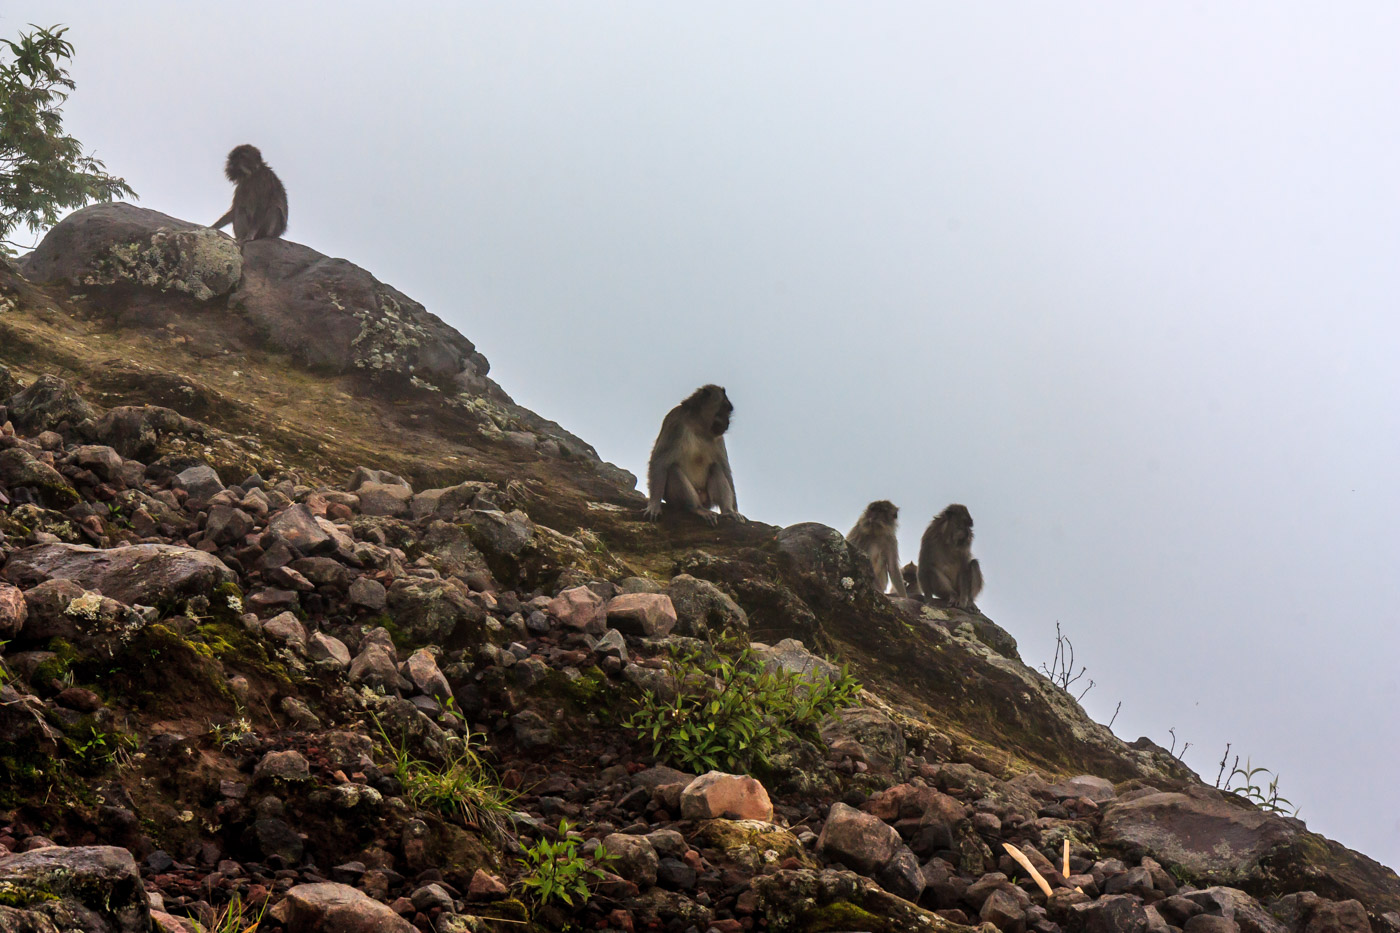 We were surrounded by monkeys. What were they doing up there?